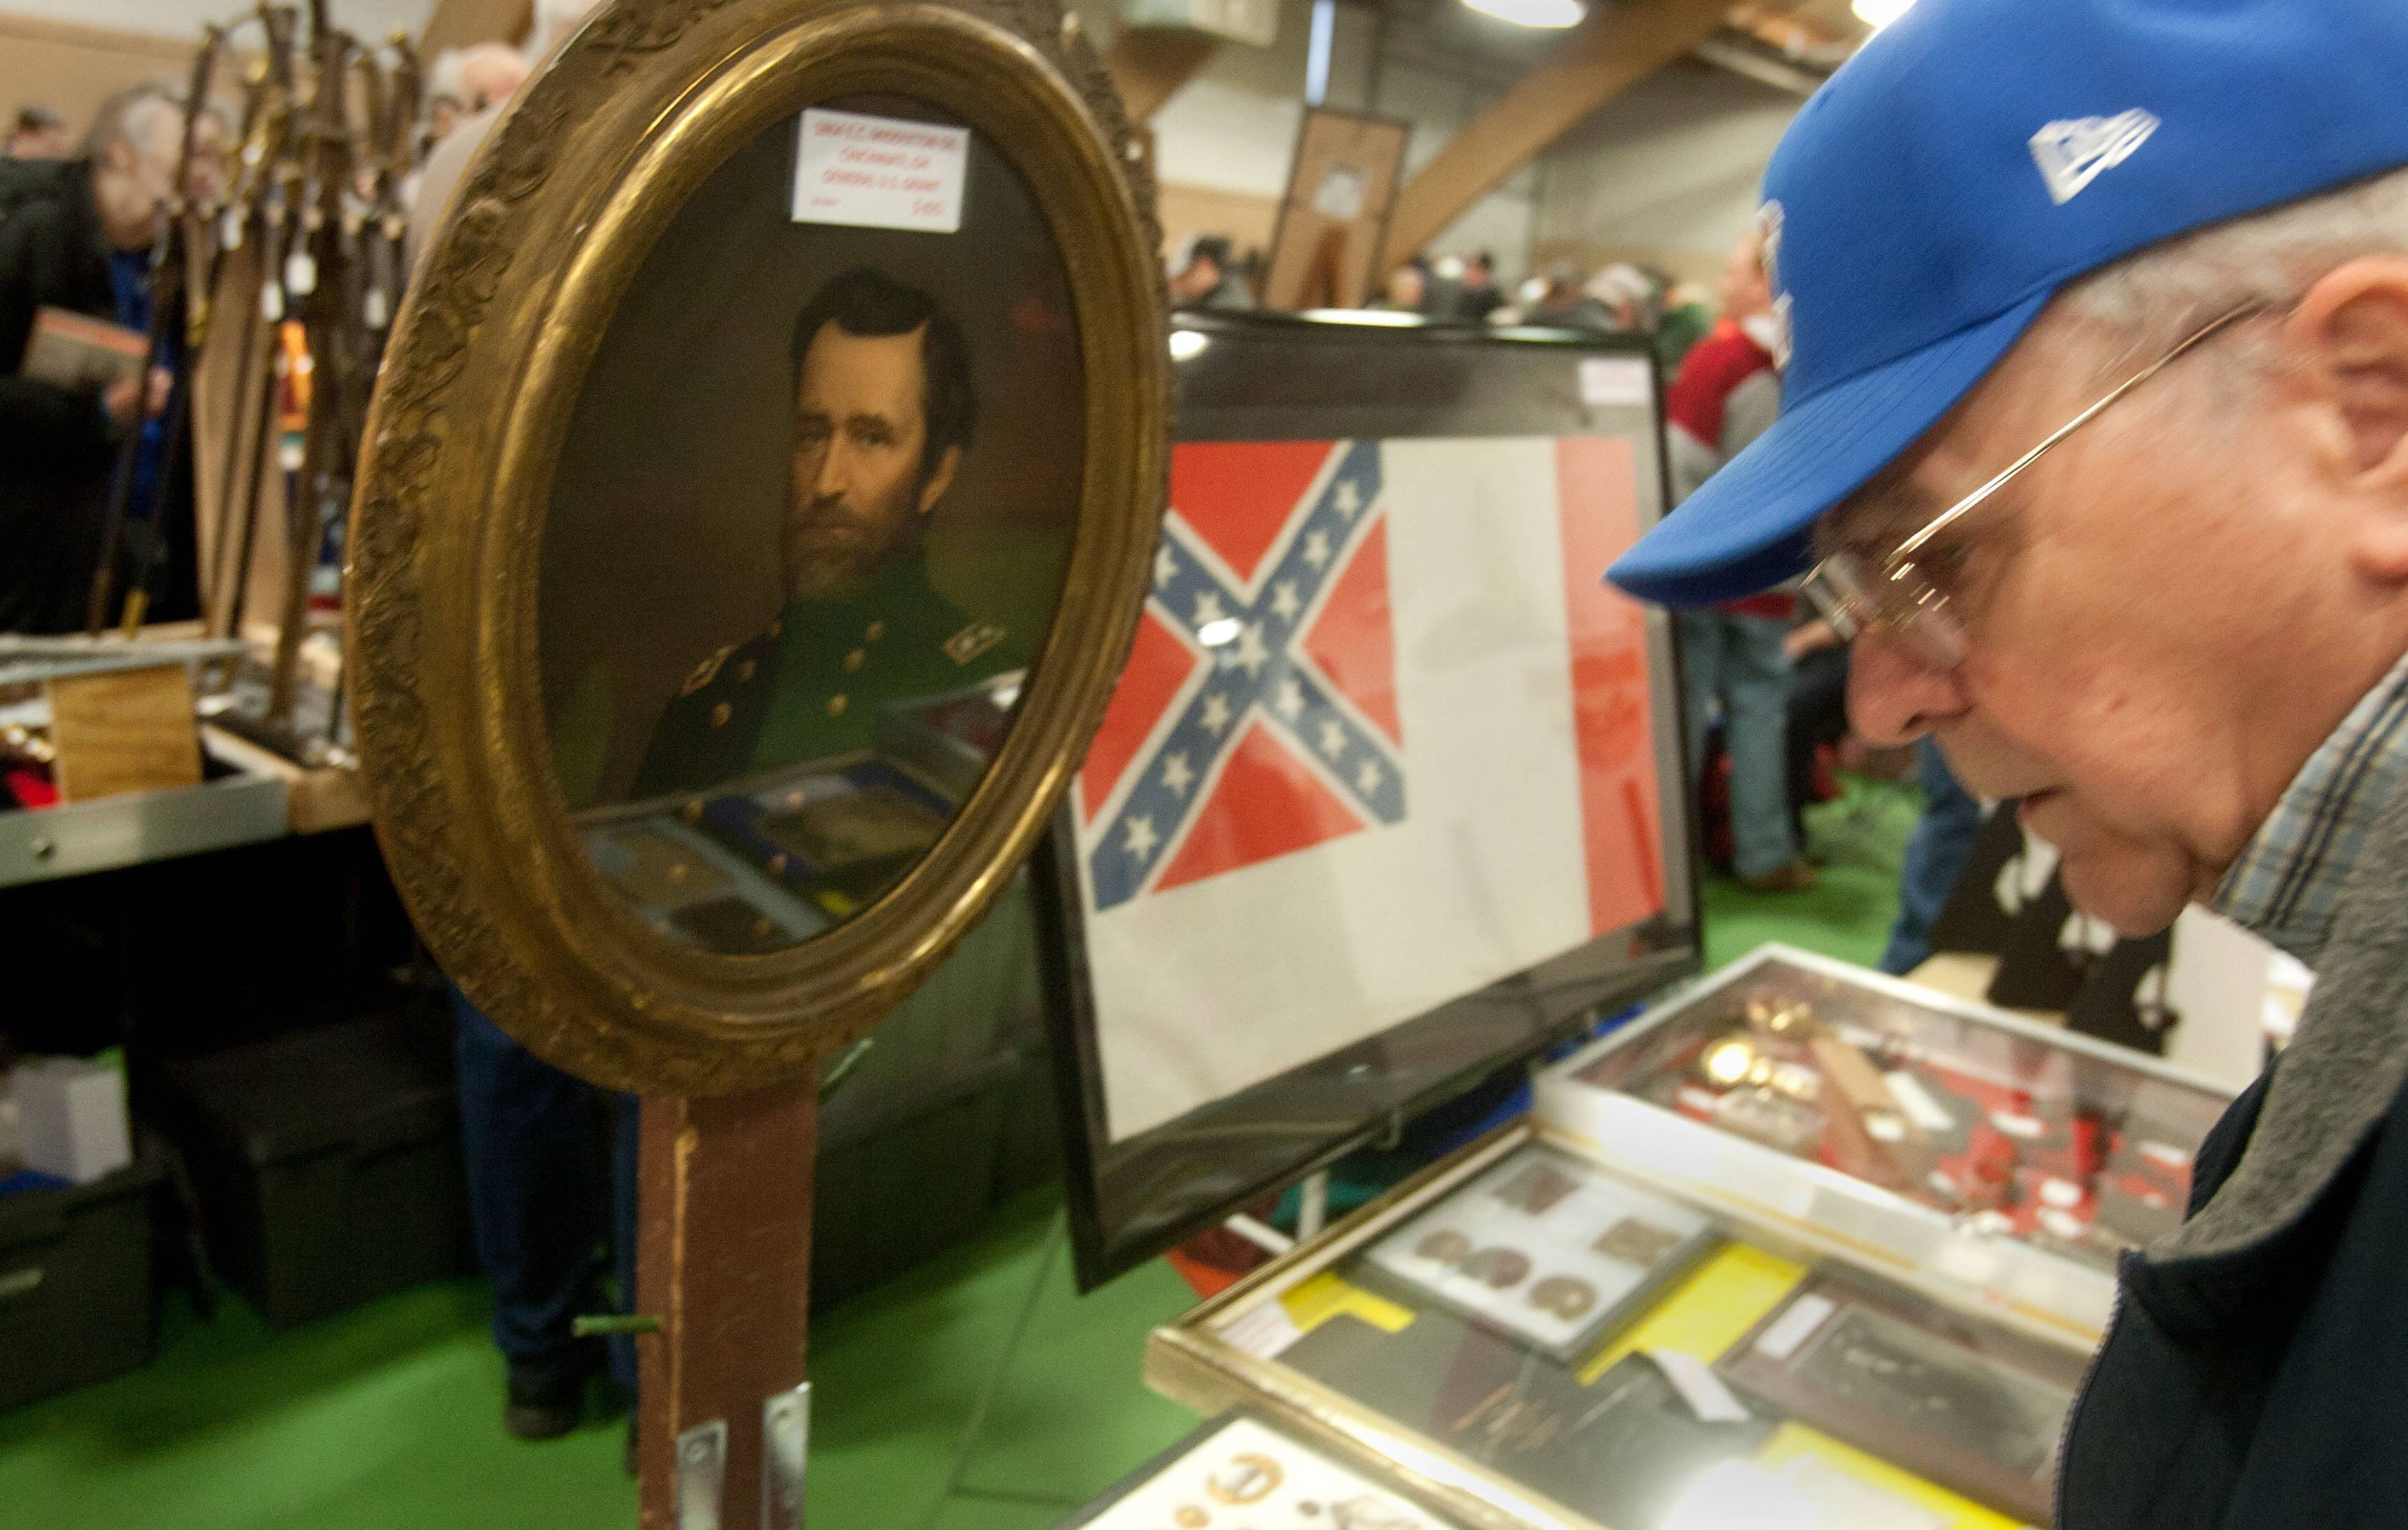 Ron Bellenger of Holland, Mich., looks over items on display at the Chicagoland National Civil War and Military Extravaganza at the DuPage County Fairgrounds. A Middleton oil painting of Gen. Ulysses S. Grant stands next to the third pattern of the Confederate national flag.